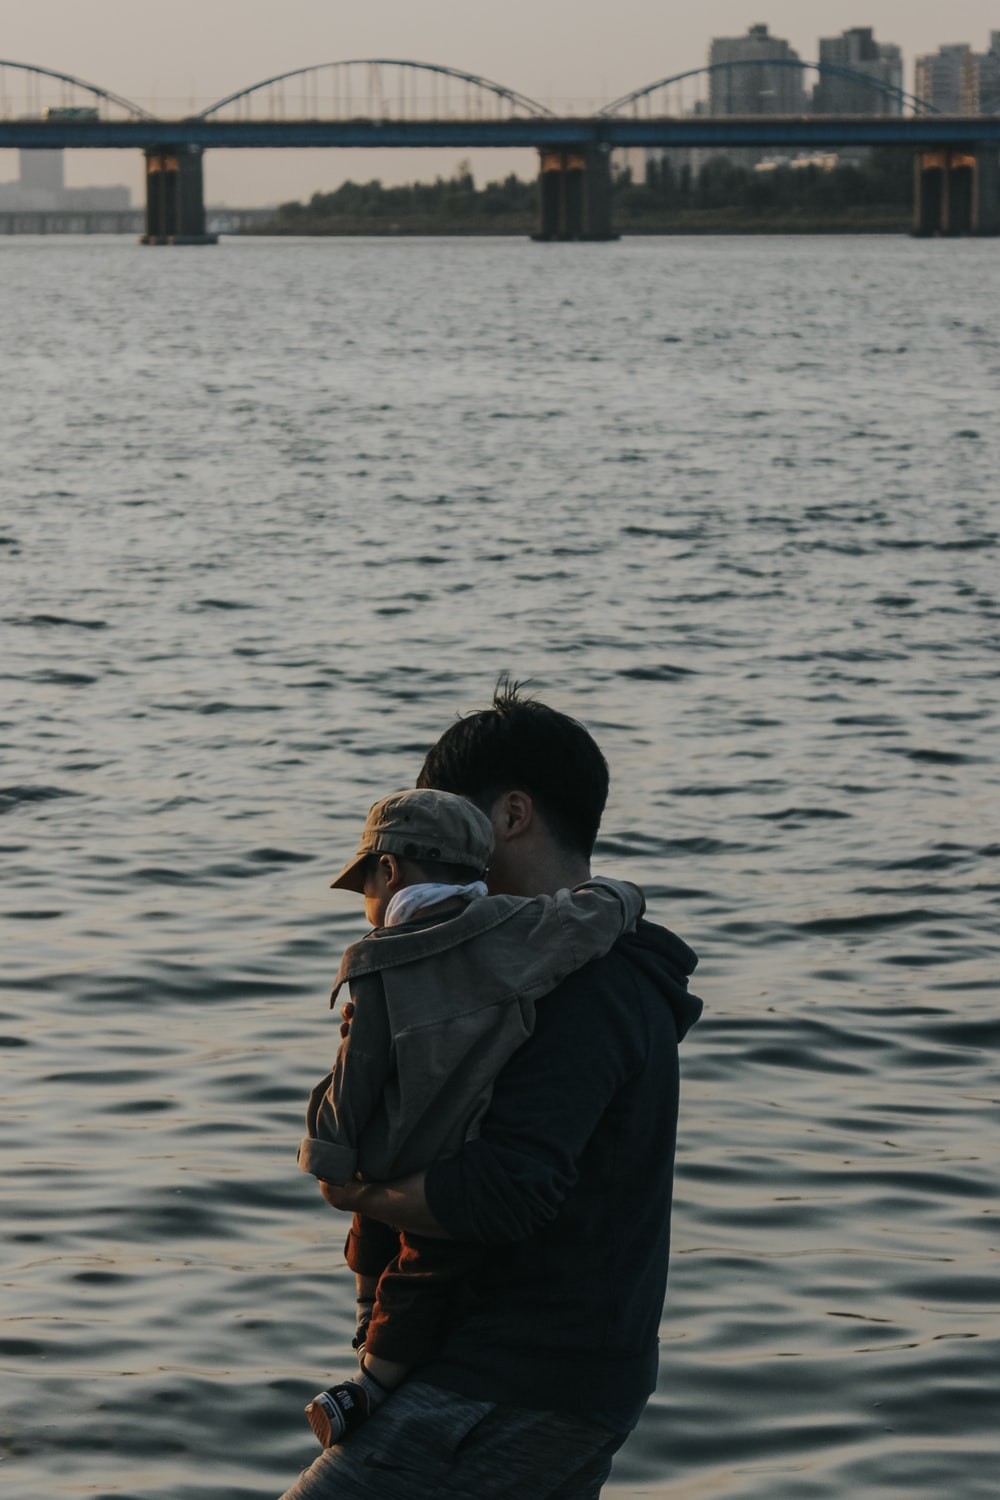 man carrying a baby in the beach